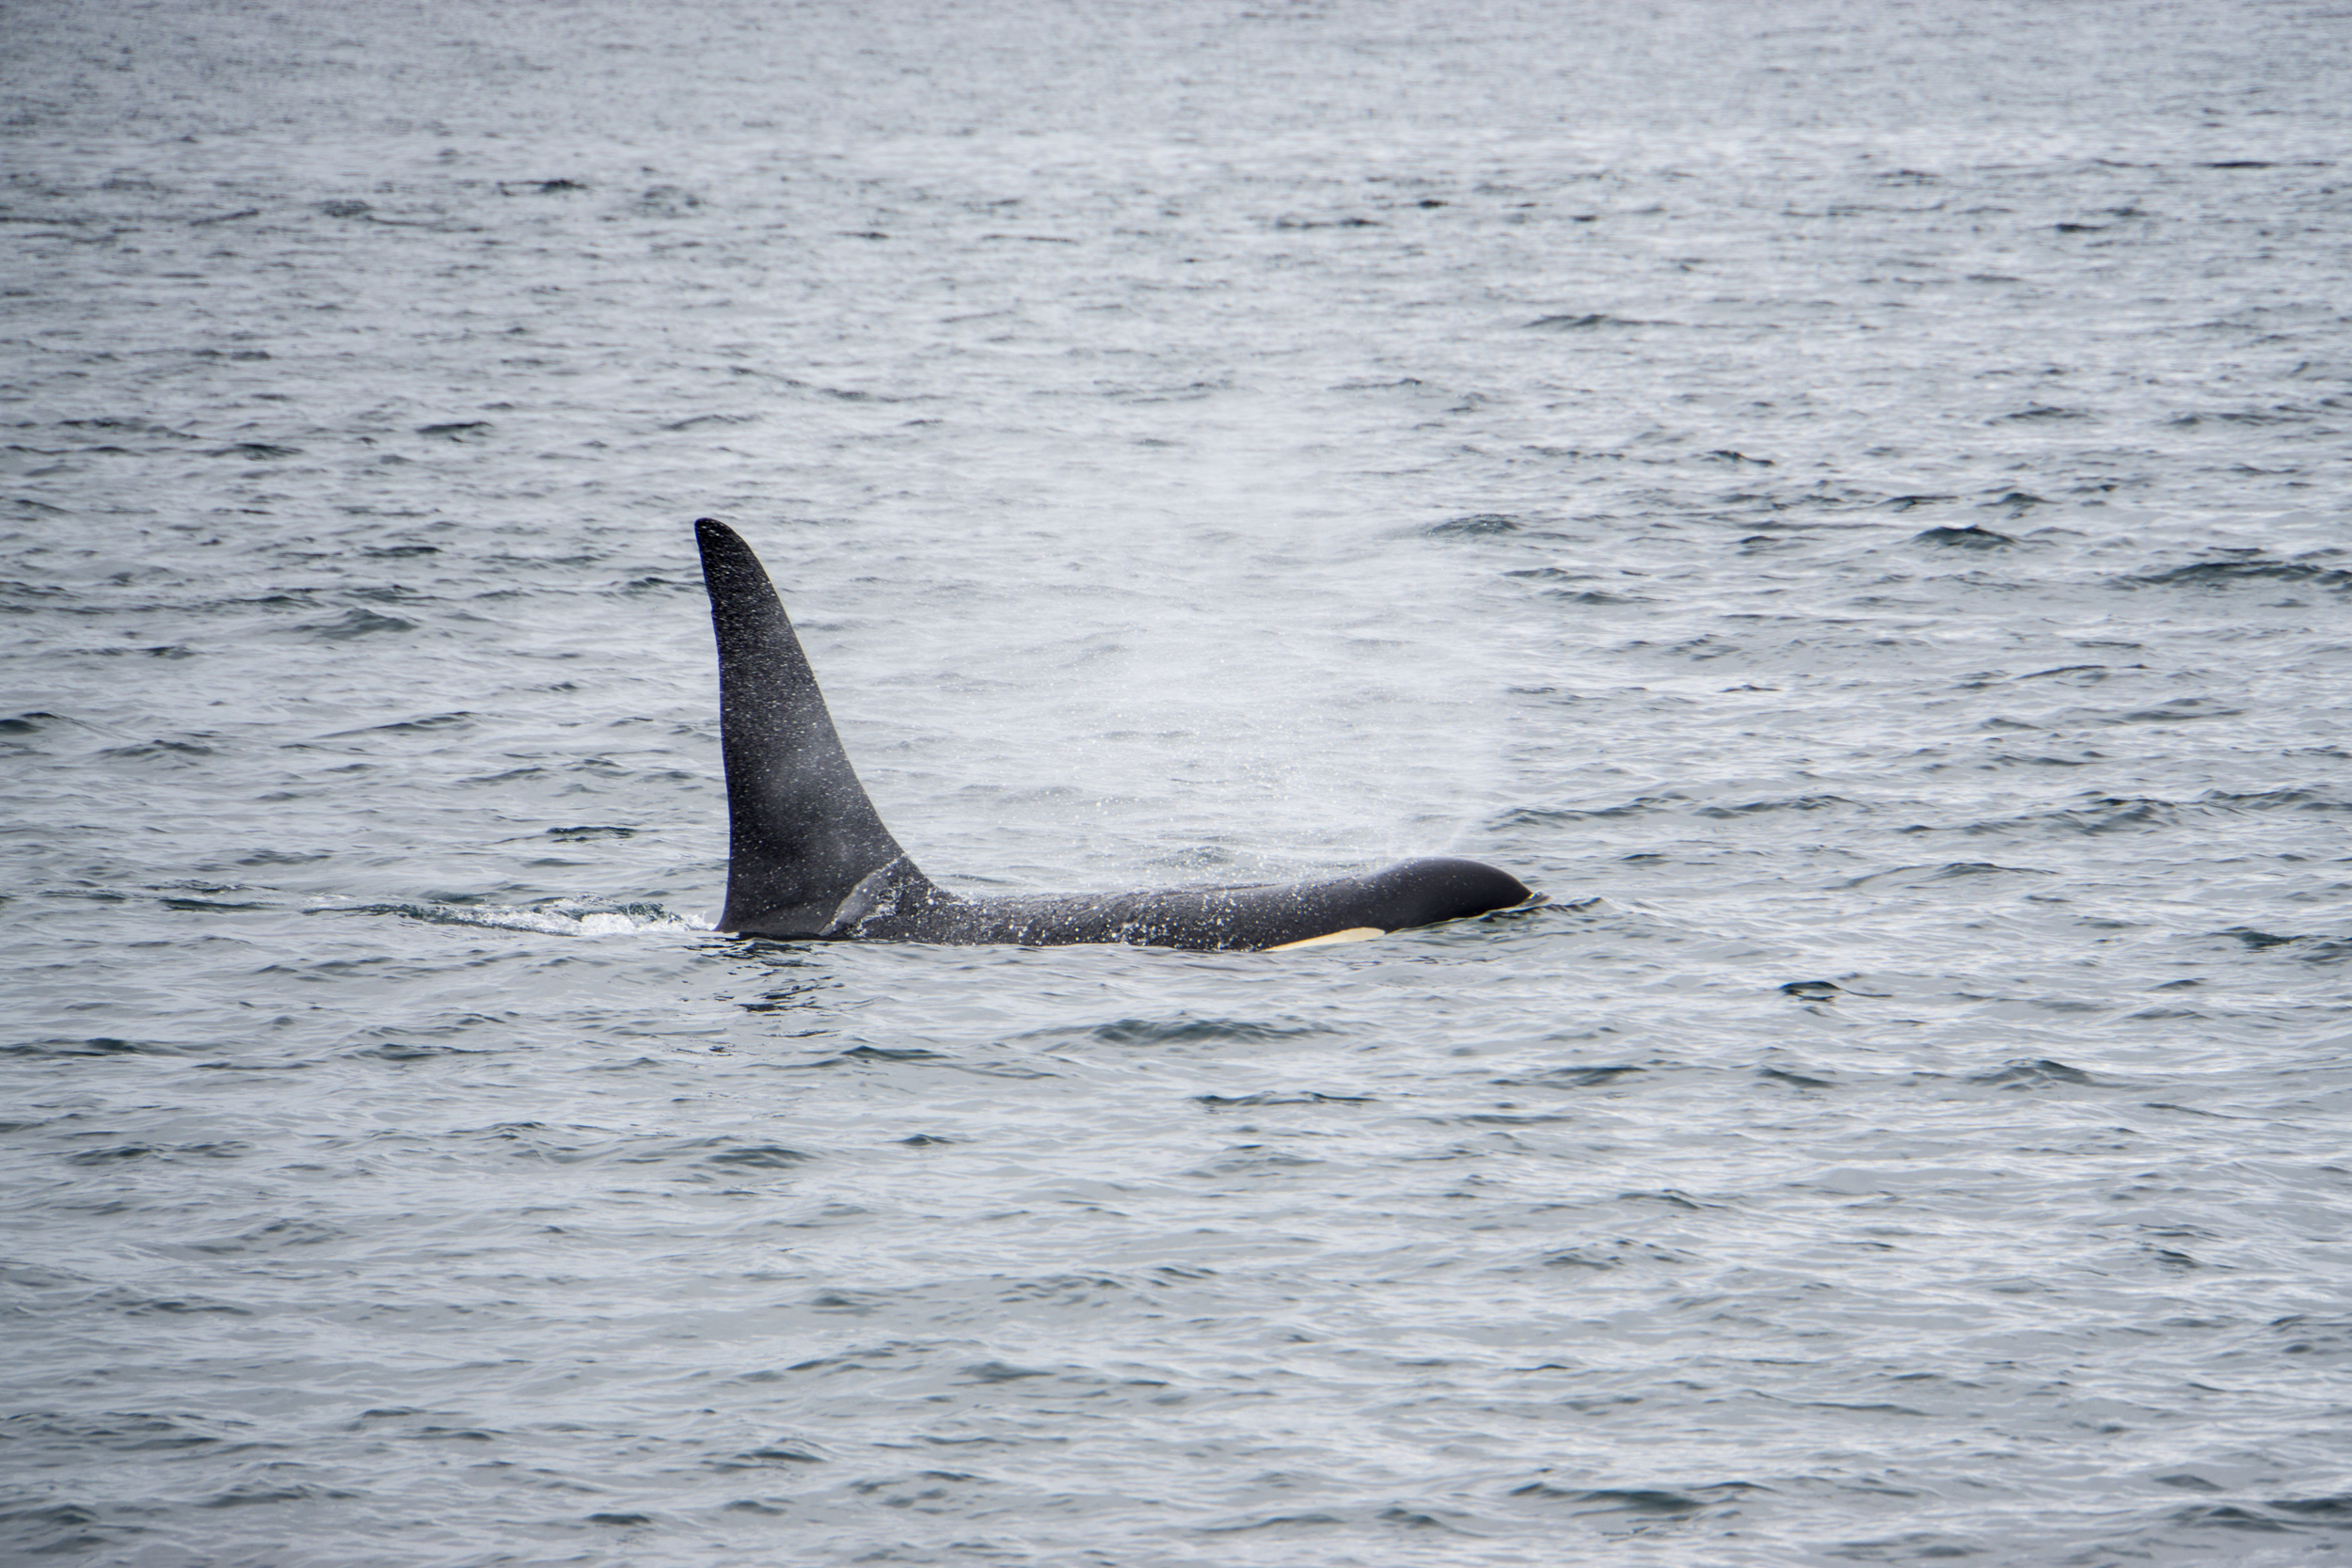 Seeing orcas was on our bucket list, so we went whale watching!